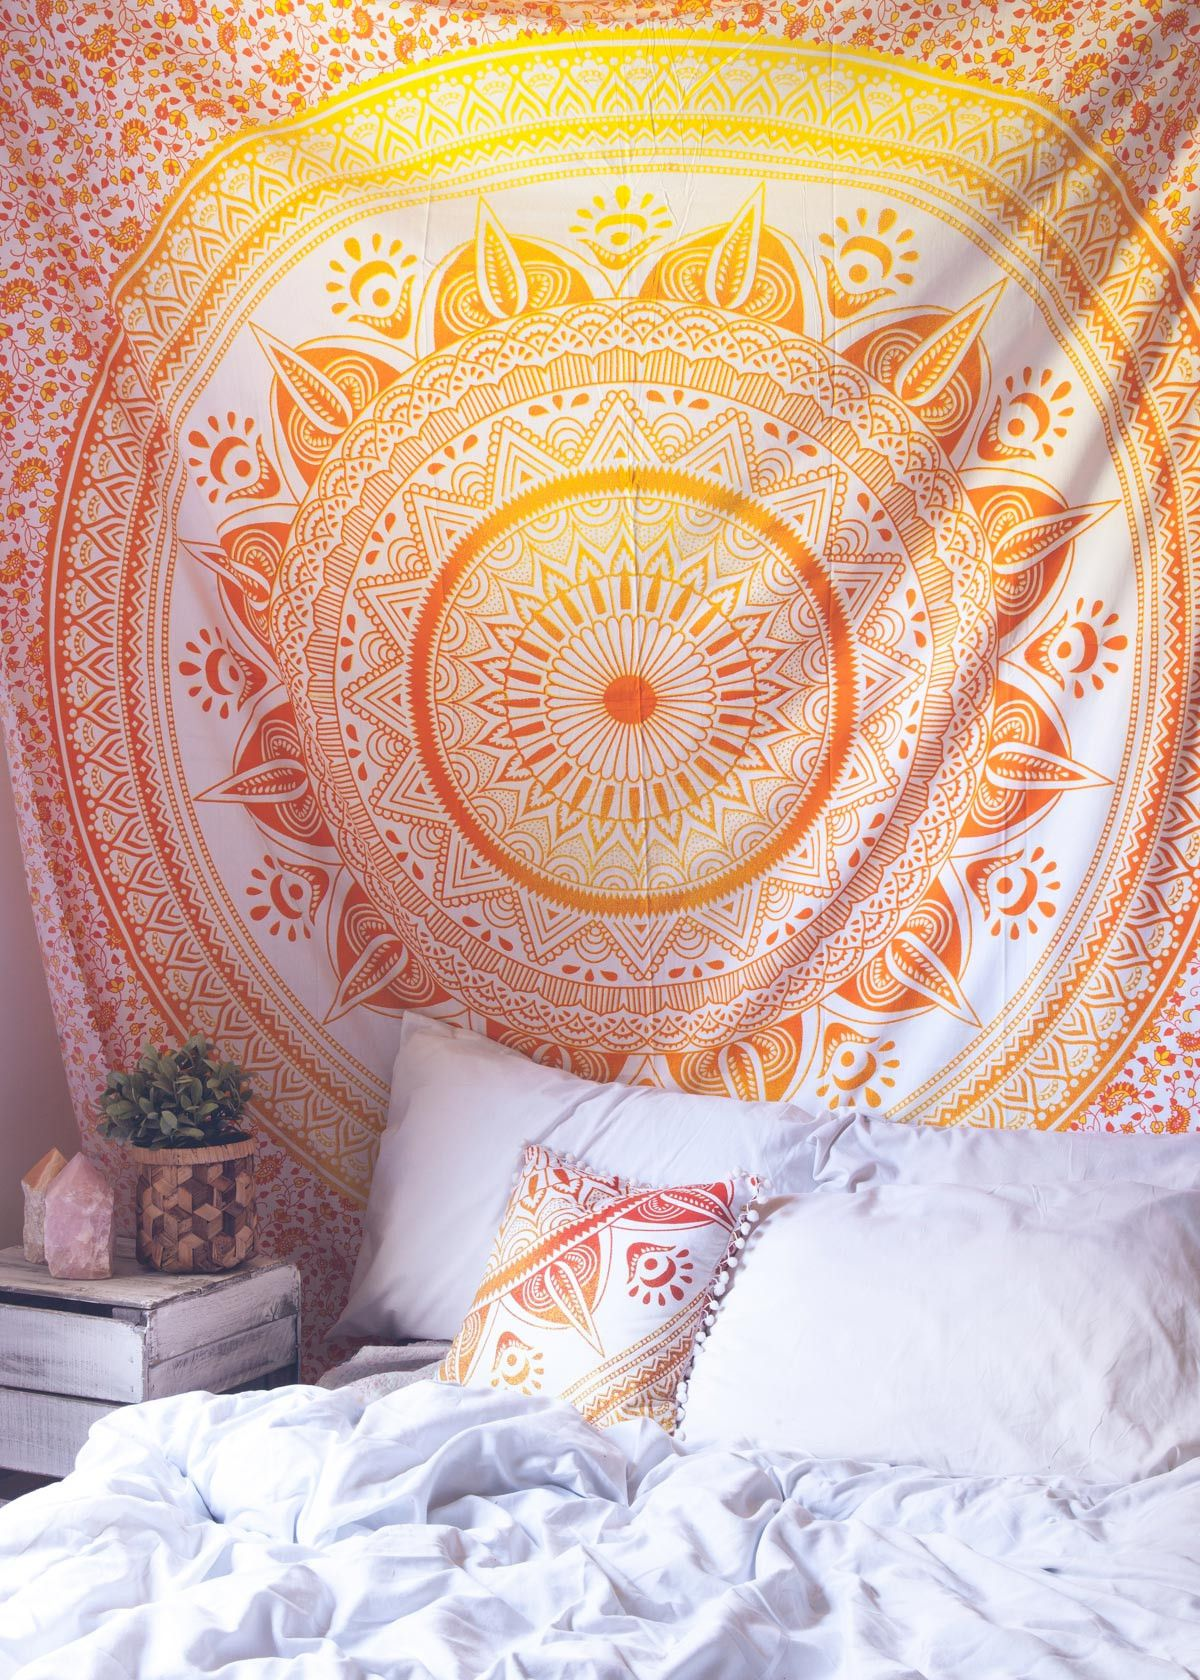 Tangerine Mystic Medallion Tapestry Decor Diy